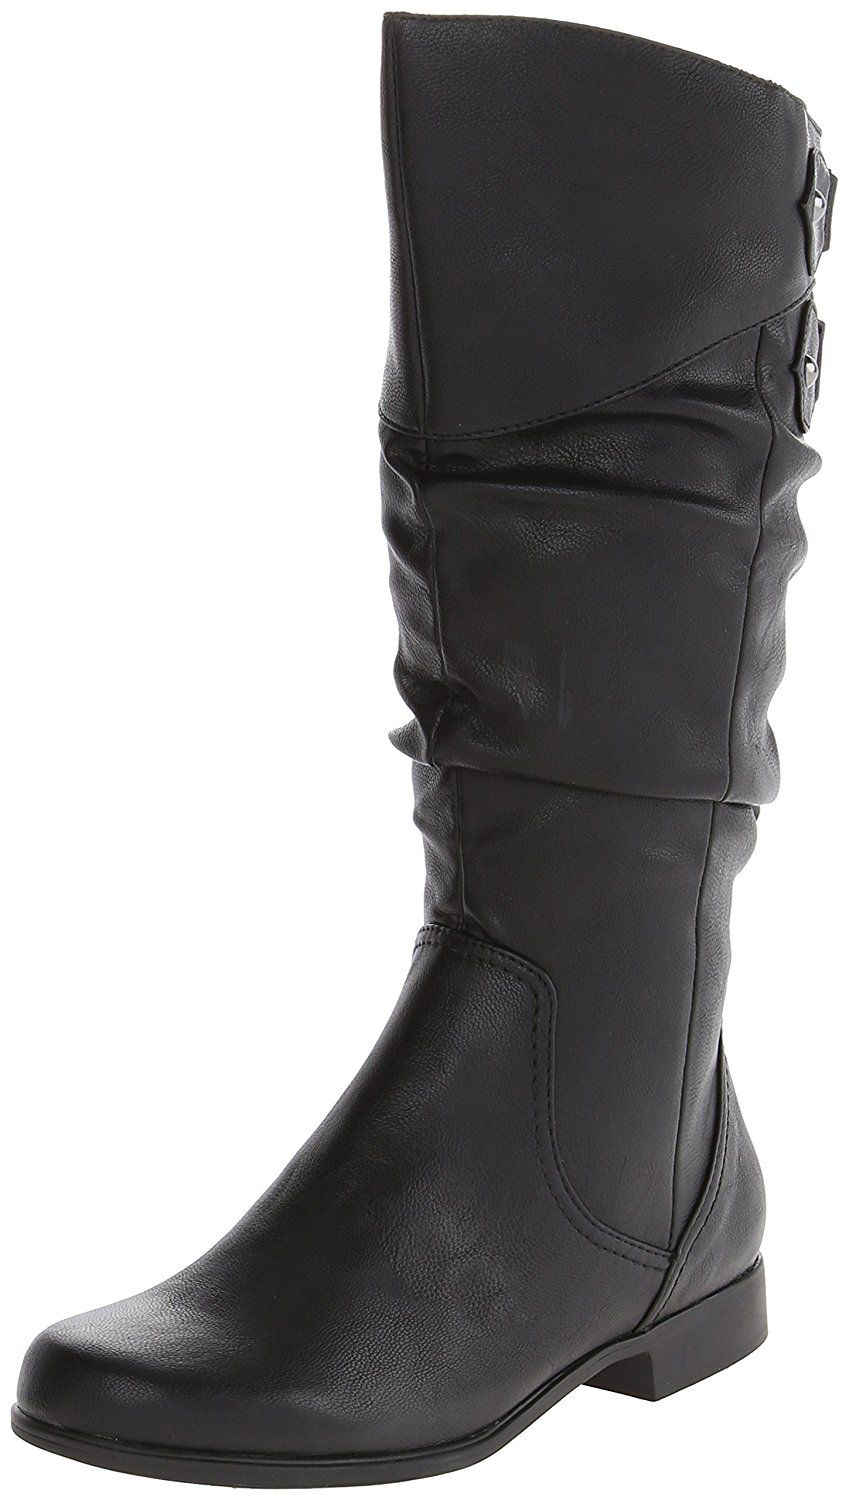 Hush Puppies Women S Gianna Motive Boot Insider S Special Review You Can T Miss Read More Boots Mid Calf Hush Puppies Women Boots Hush Puppies